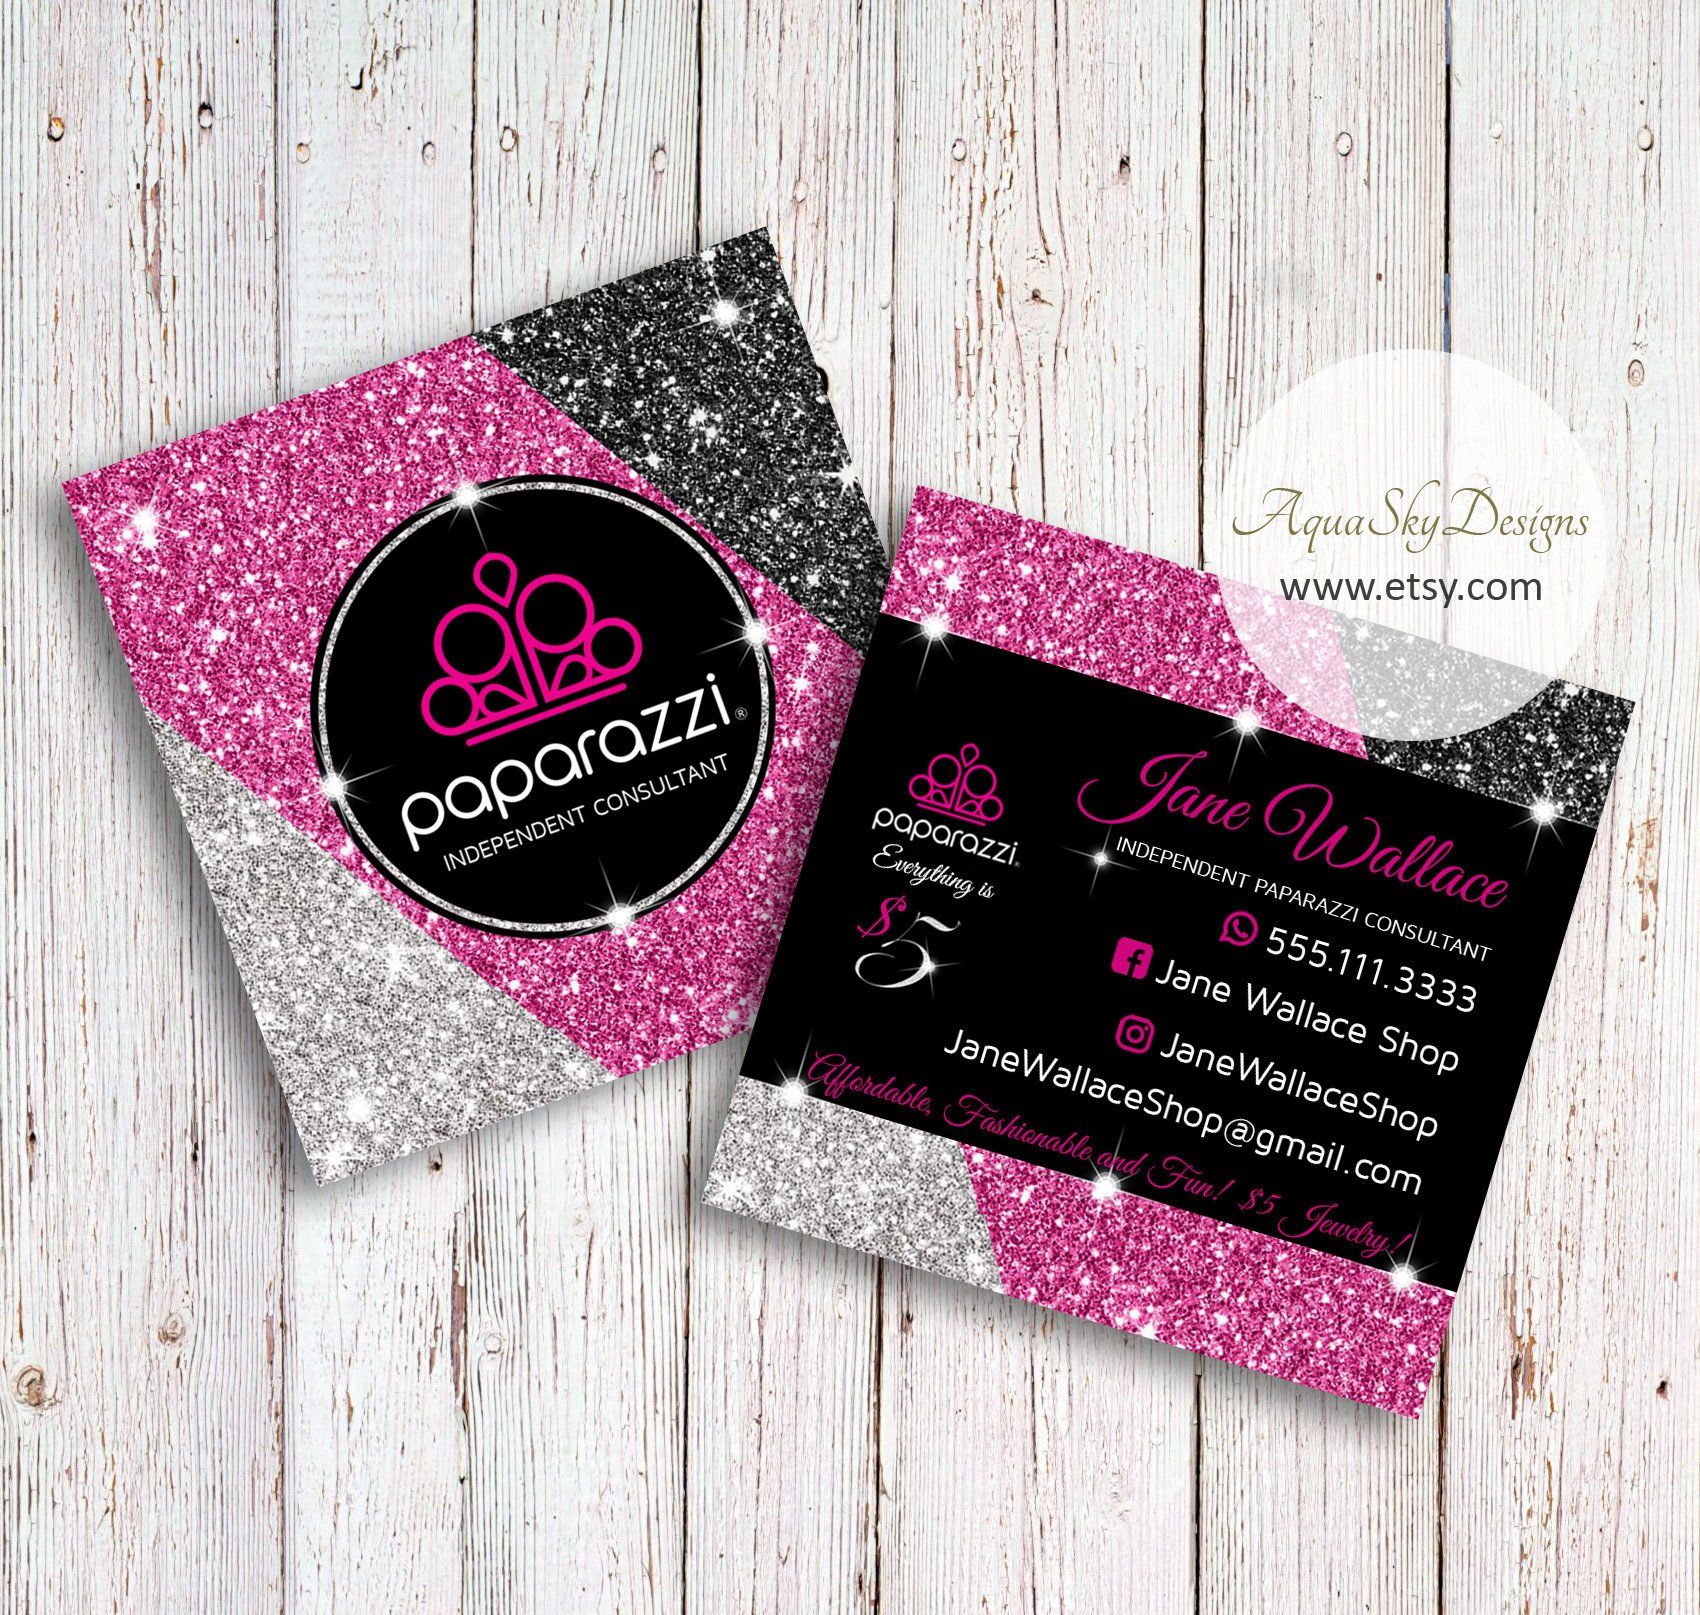 Paparazzi Business Cards Vistaprint Paparazzi Business Cards Template Paparazzi Accessori Jewelry Business Card Printable Business Cards Glitter Business Cards